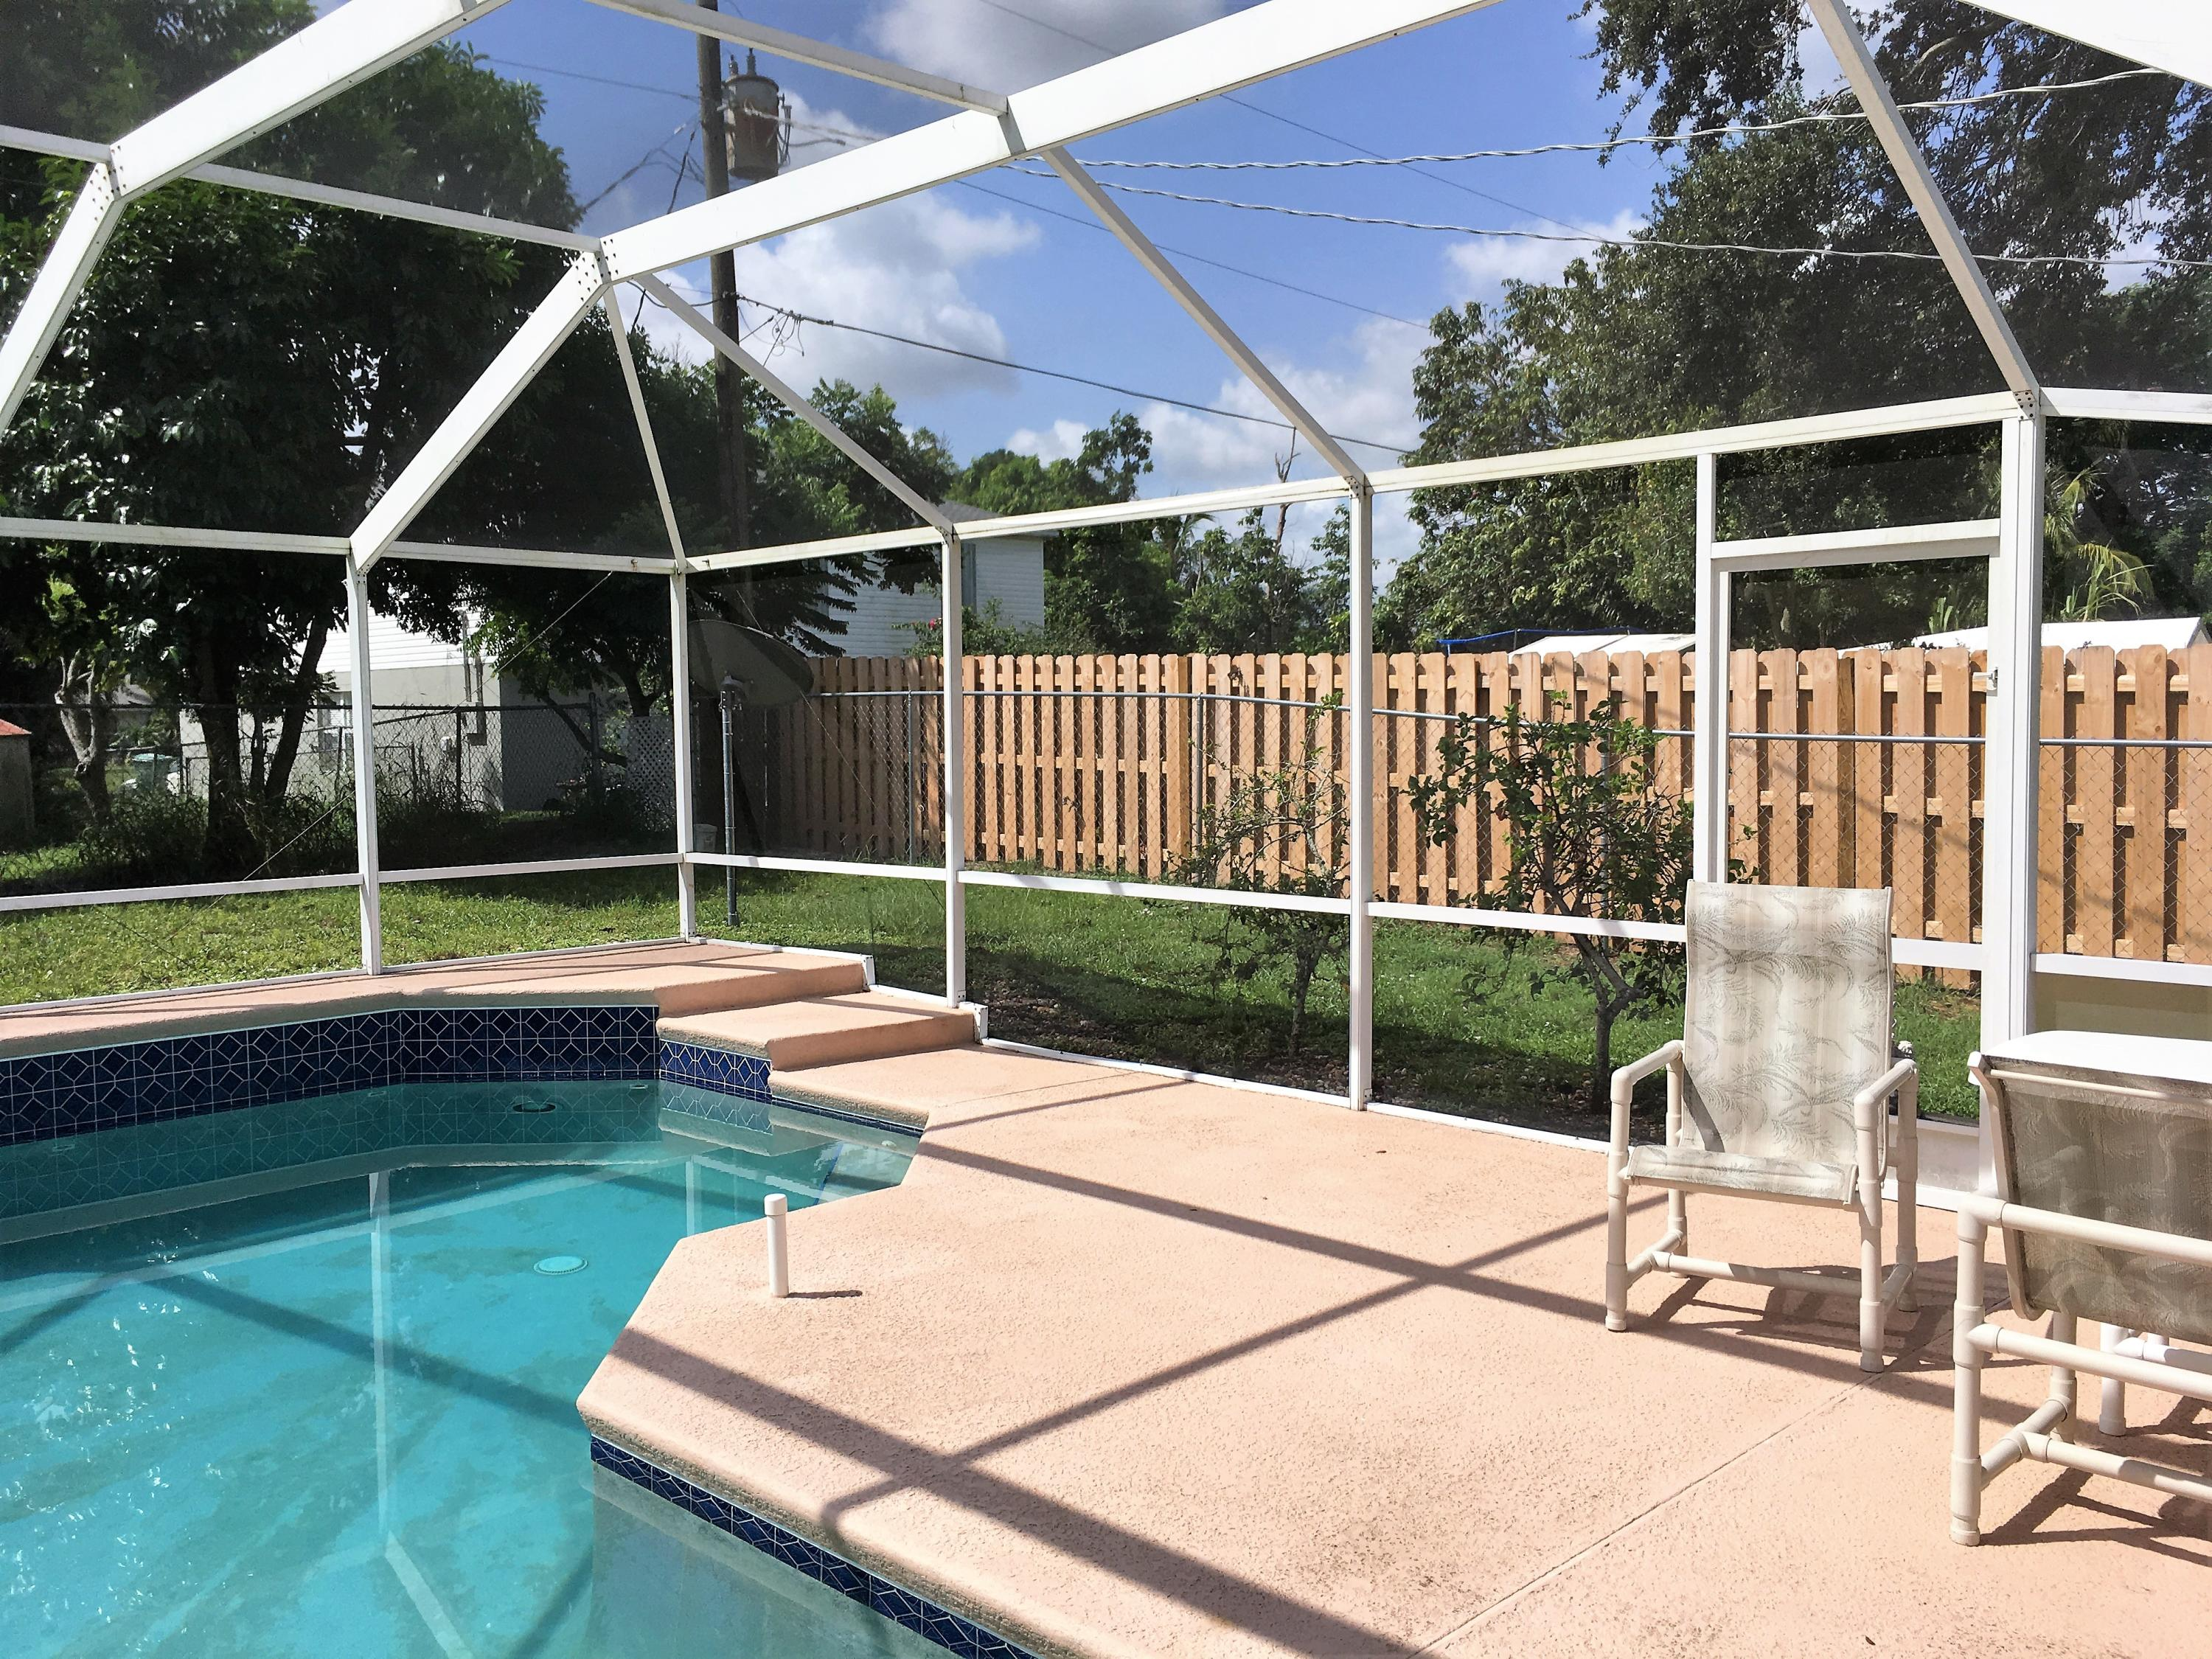 422 Se Starflower Avenue, Port Saint Lucie, FL 34953